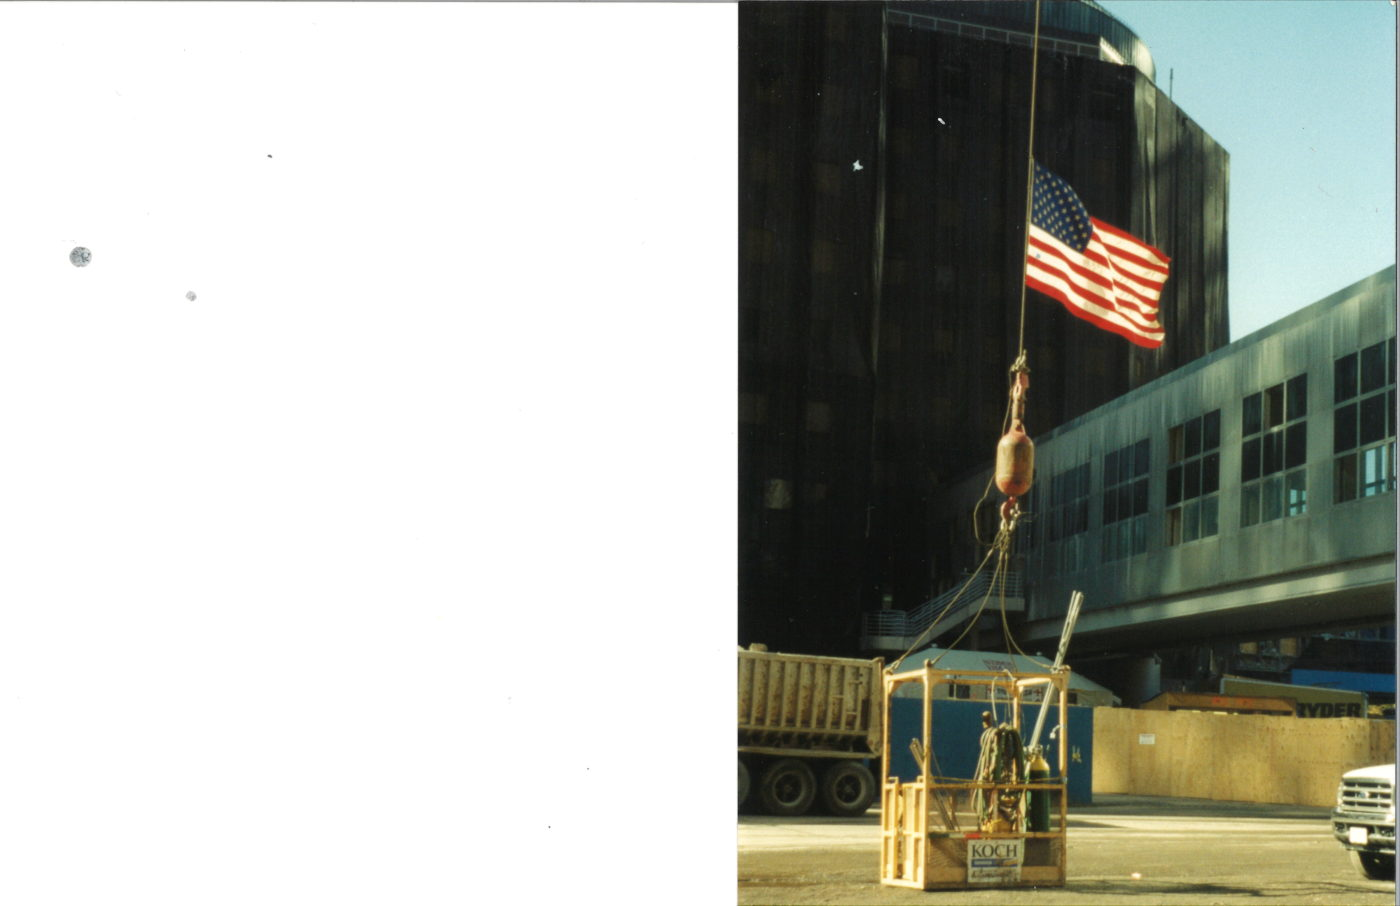 Worker Bucket with American Flag